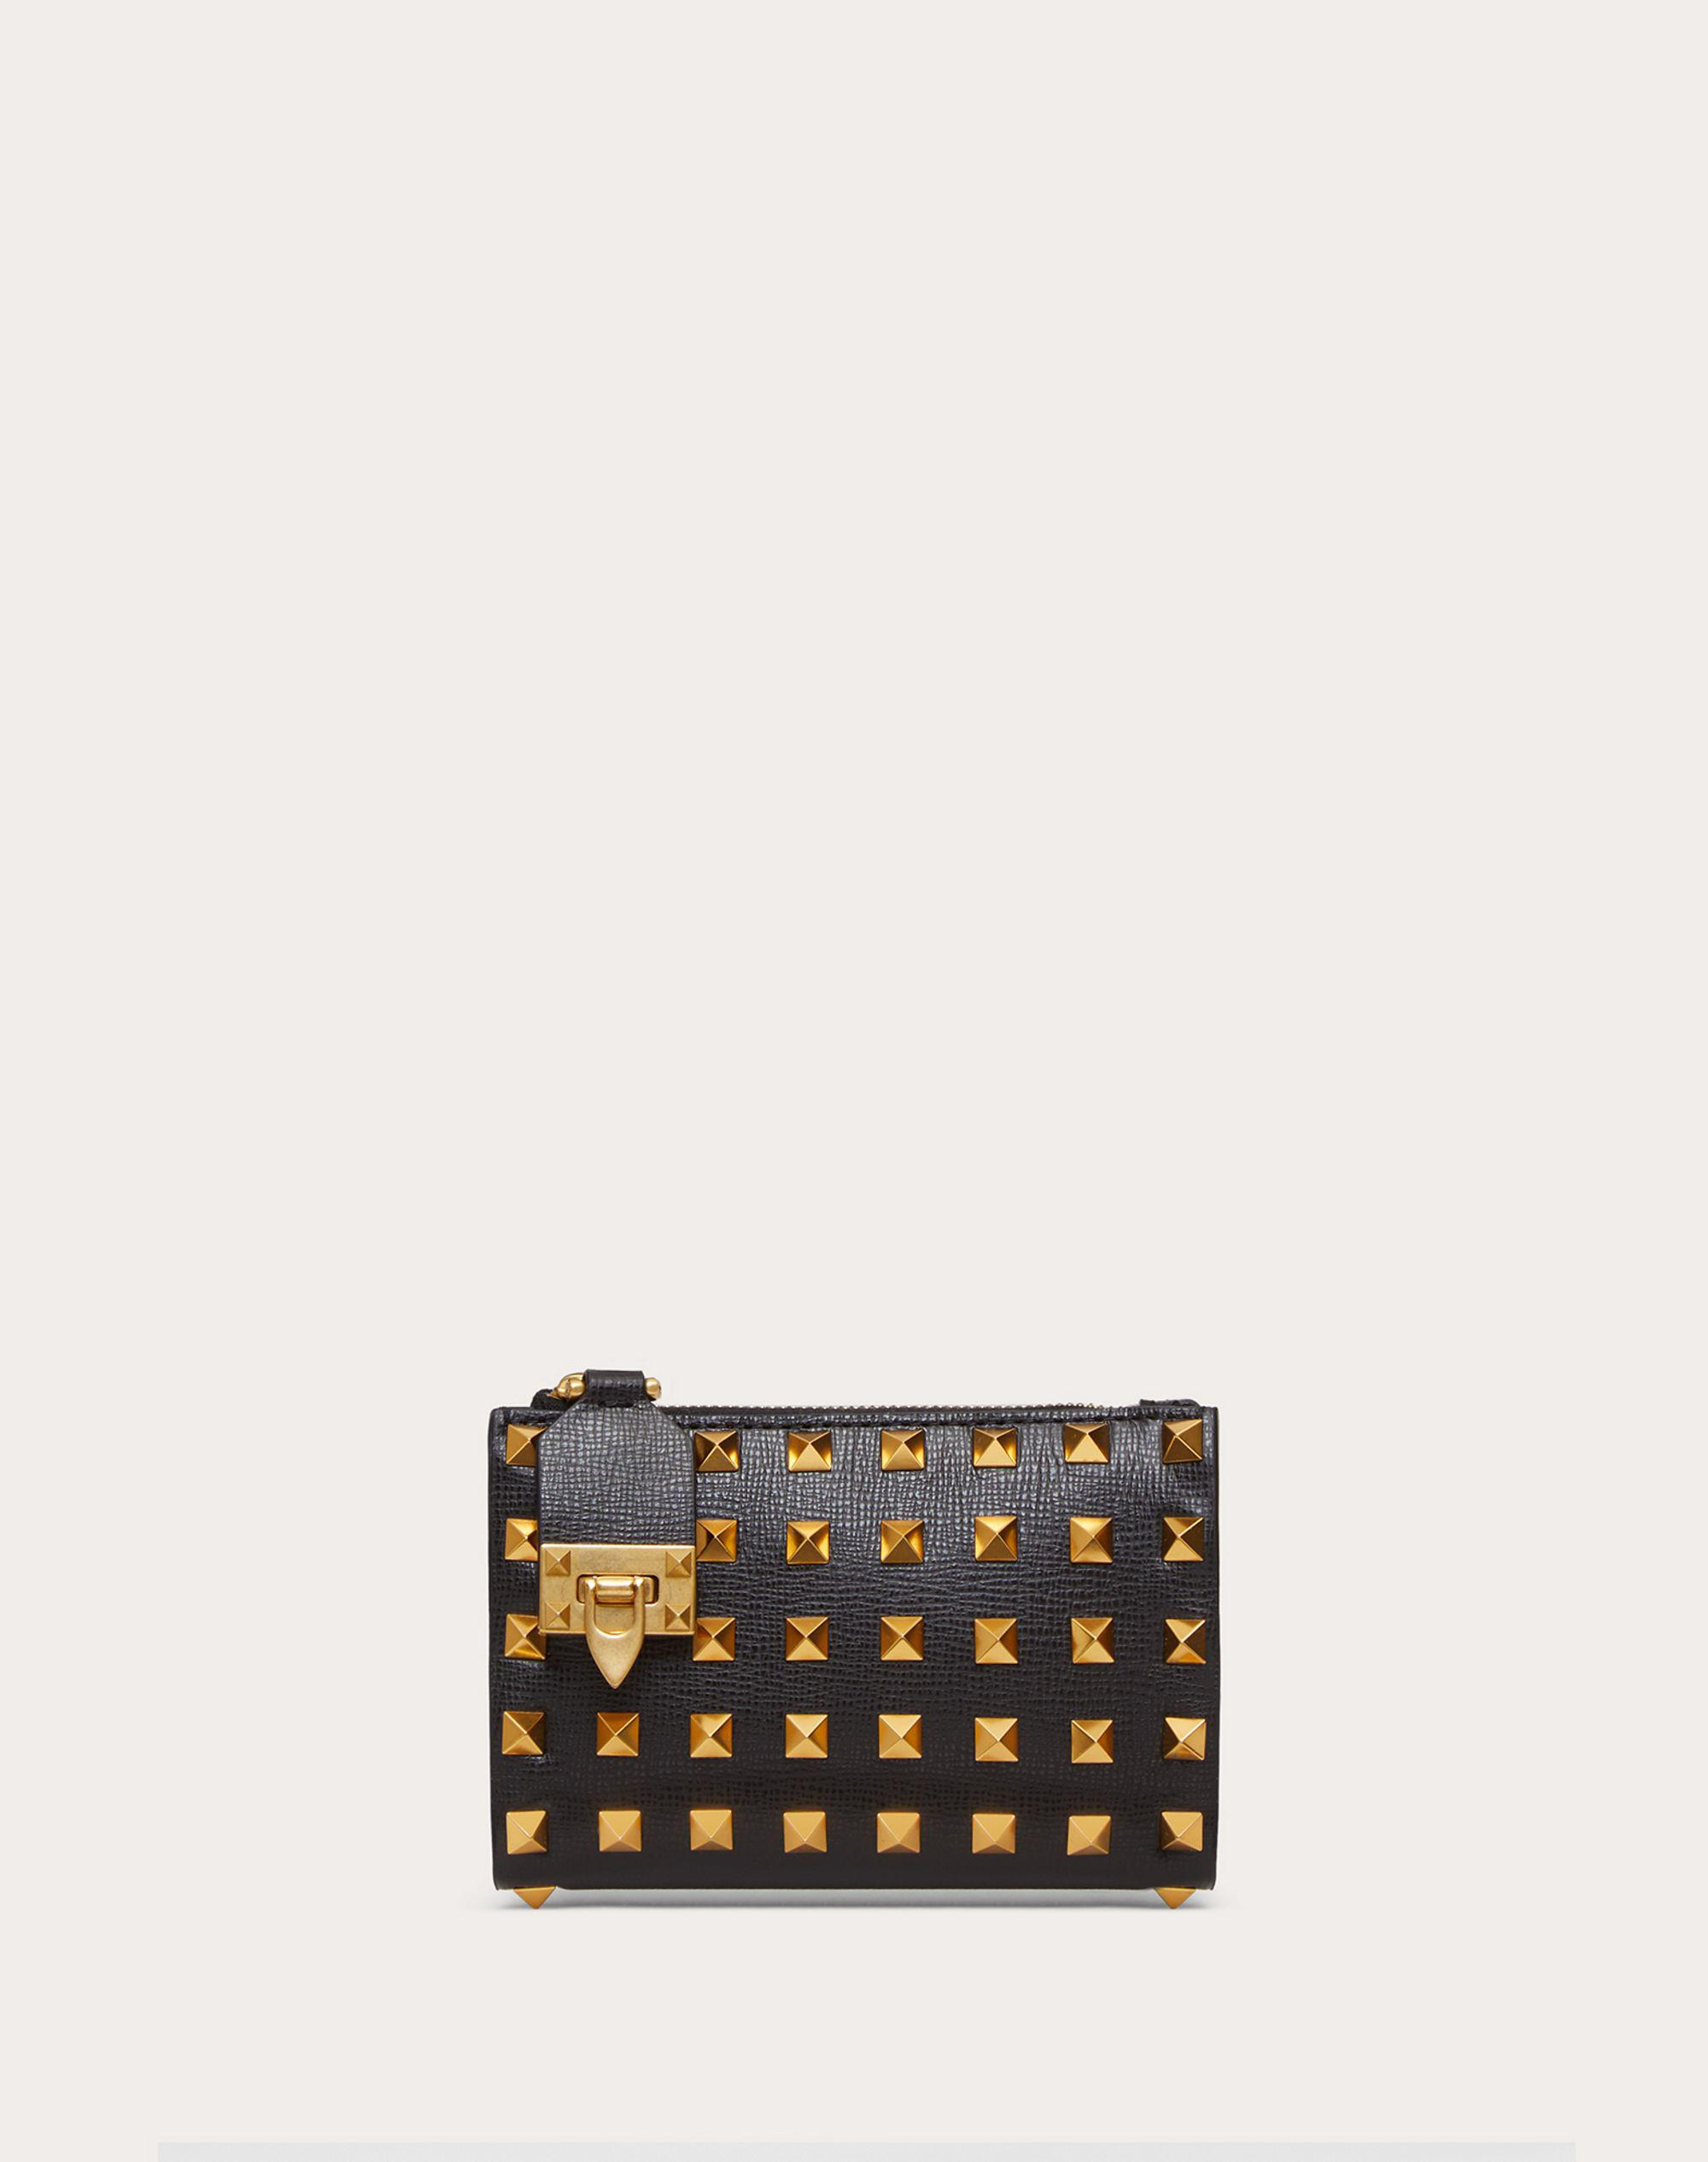 VALENTINO GARAVANI ROCKSTUD COIN PURSE AND CARDHOLDER IN GRAINY CALFSKIN LEATHER WITH ALL-OVER STUDS